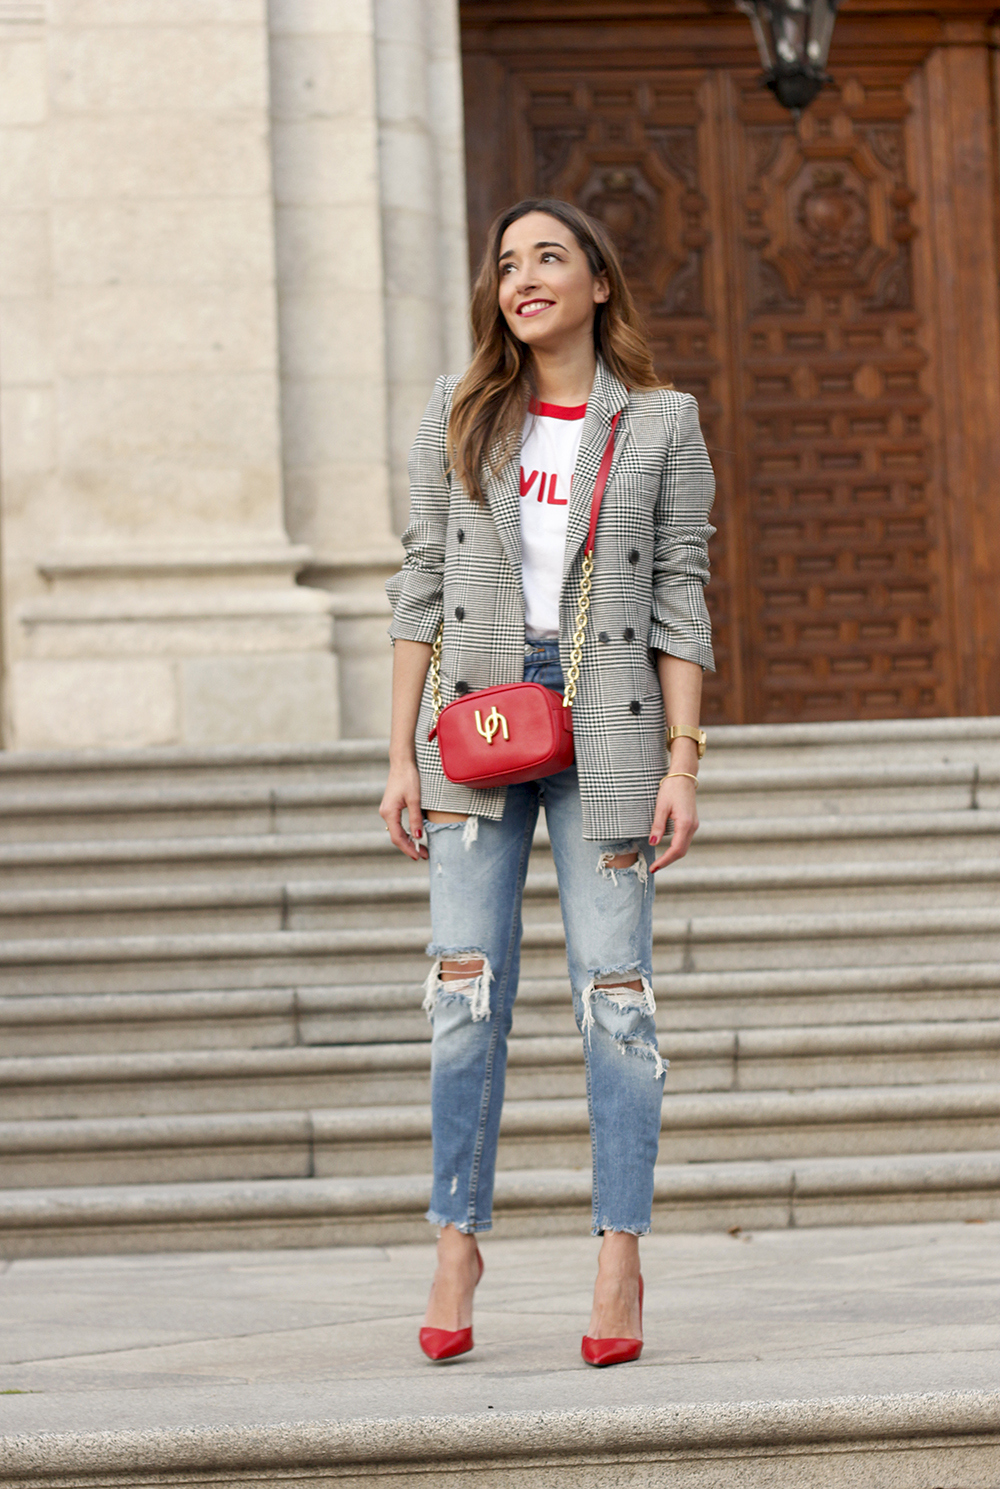 Prince of wales print blazer ripped jeans red heels uterqüe style trend fall outfit03